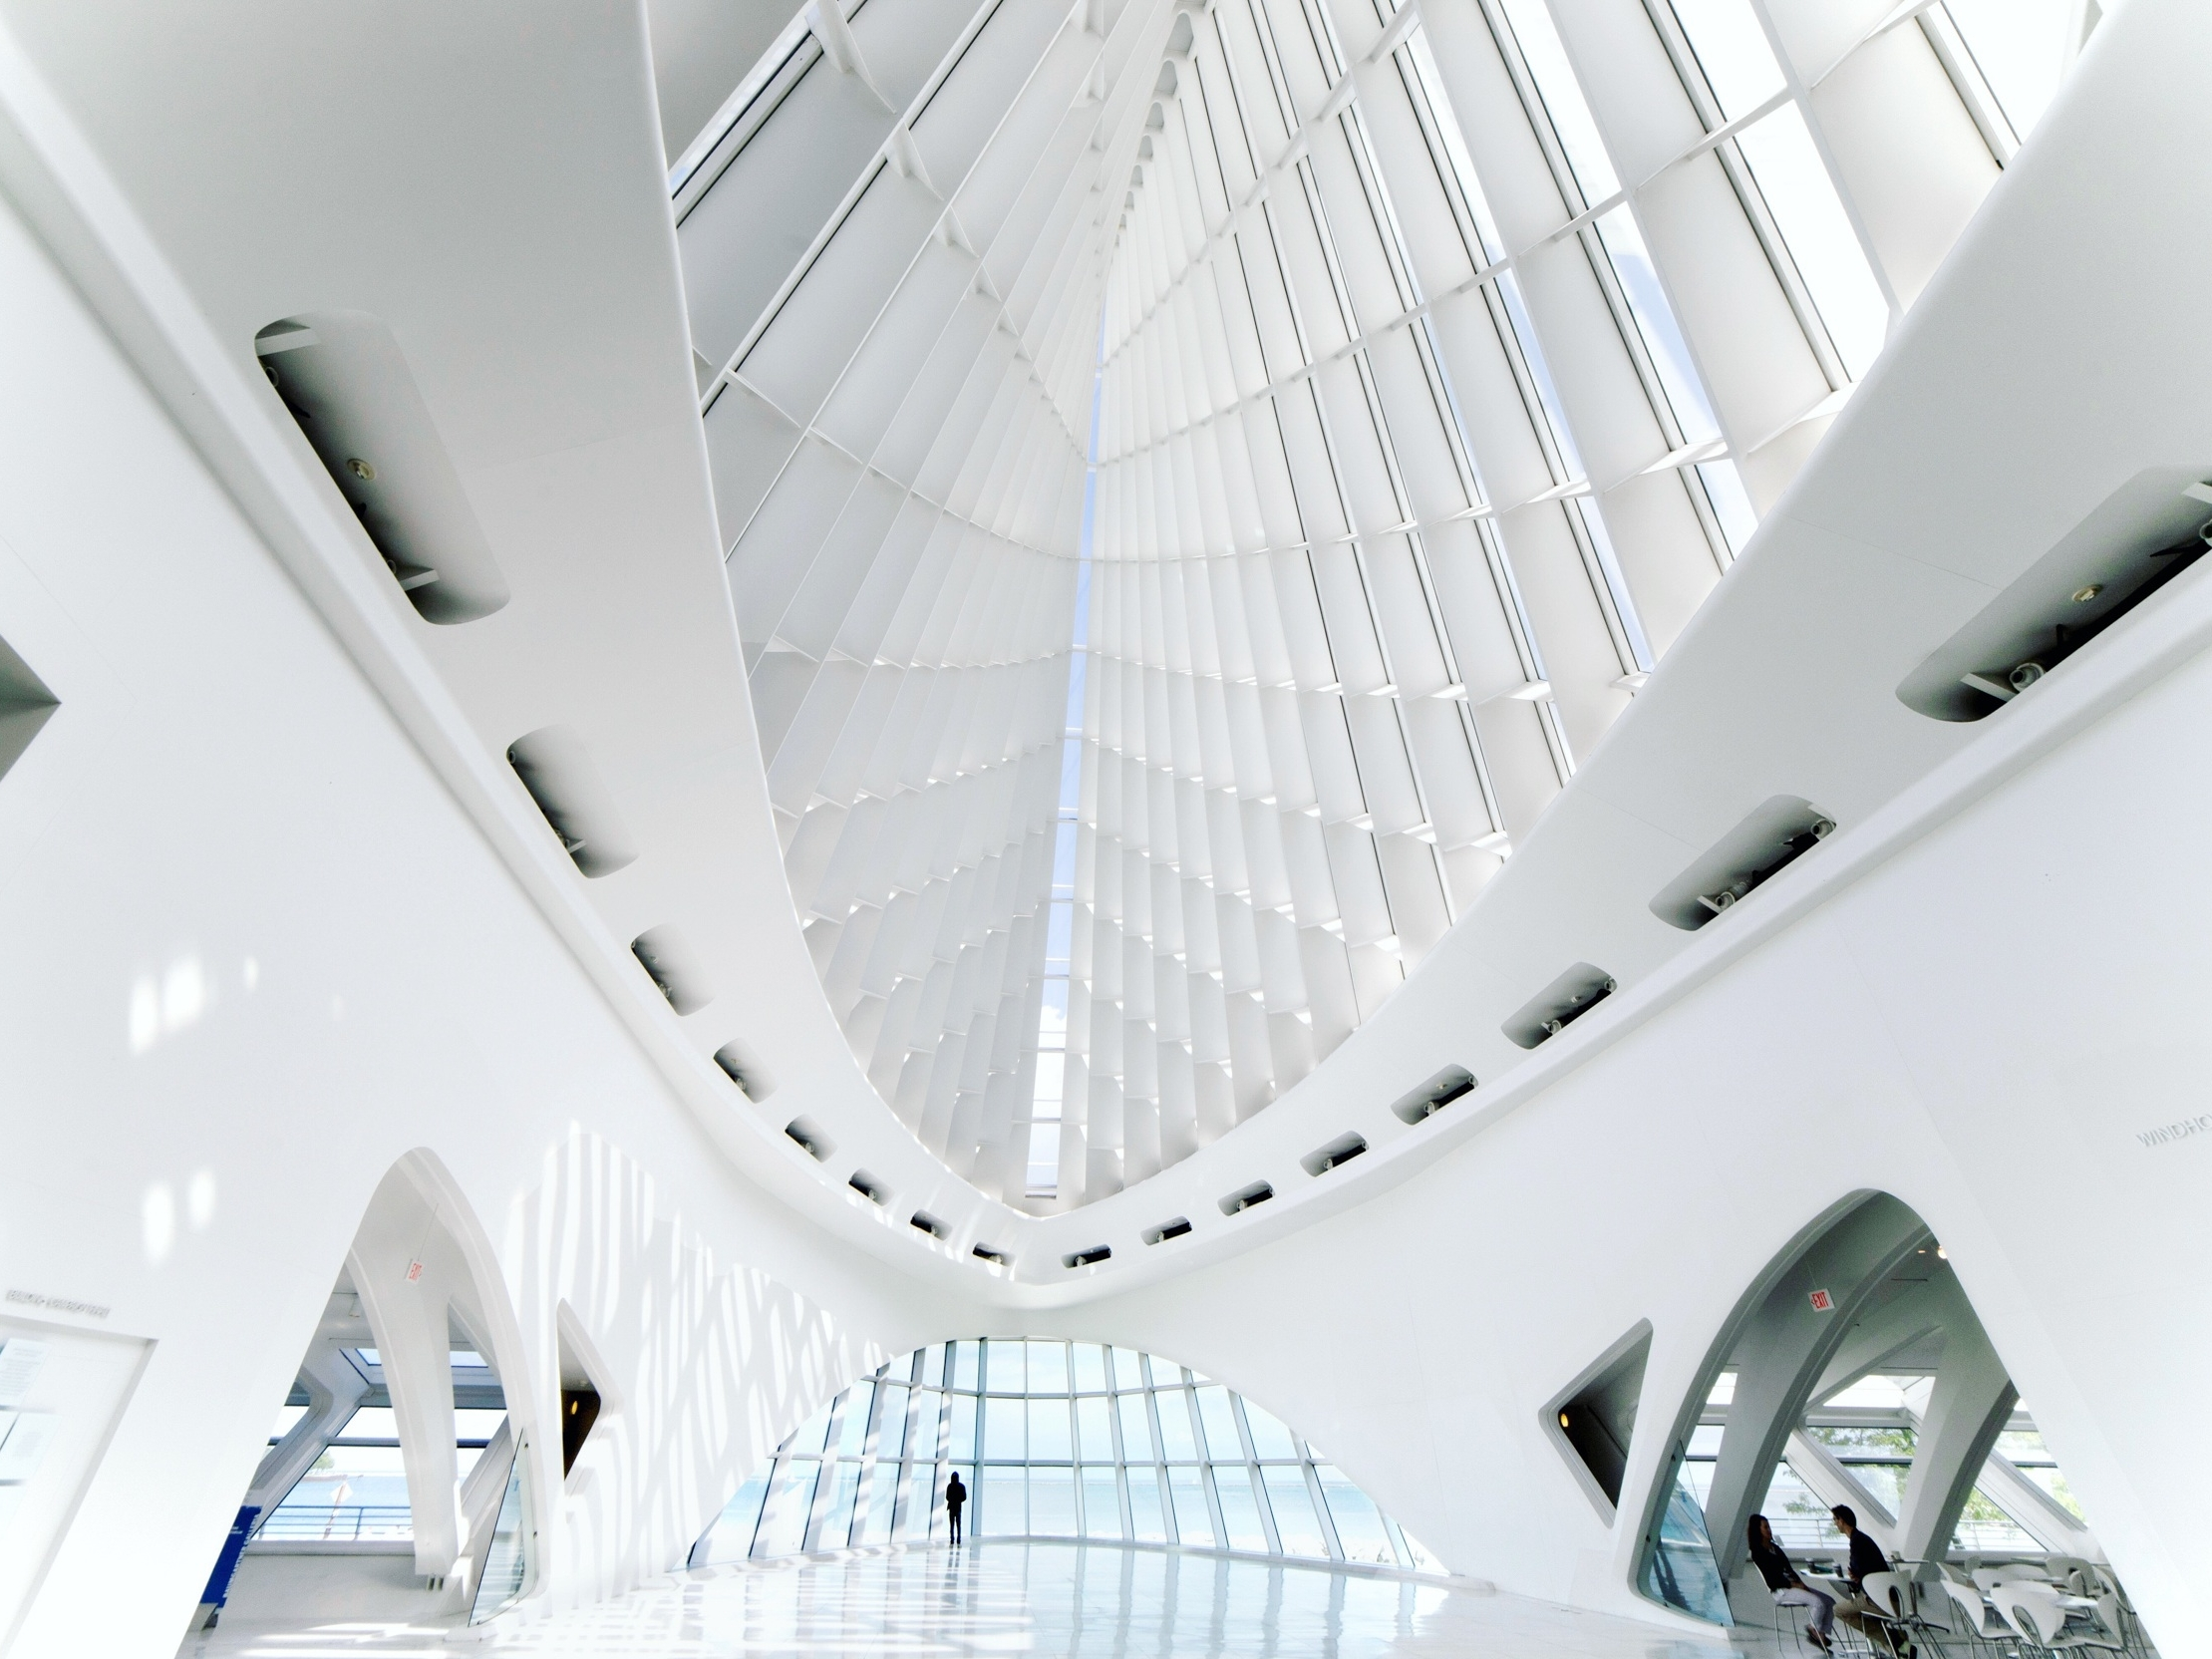 facility-planning-facility-design-fm-services-fm-companies-commercial-interiors.jpg